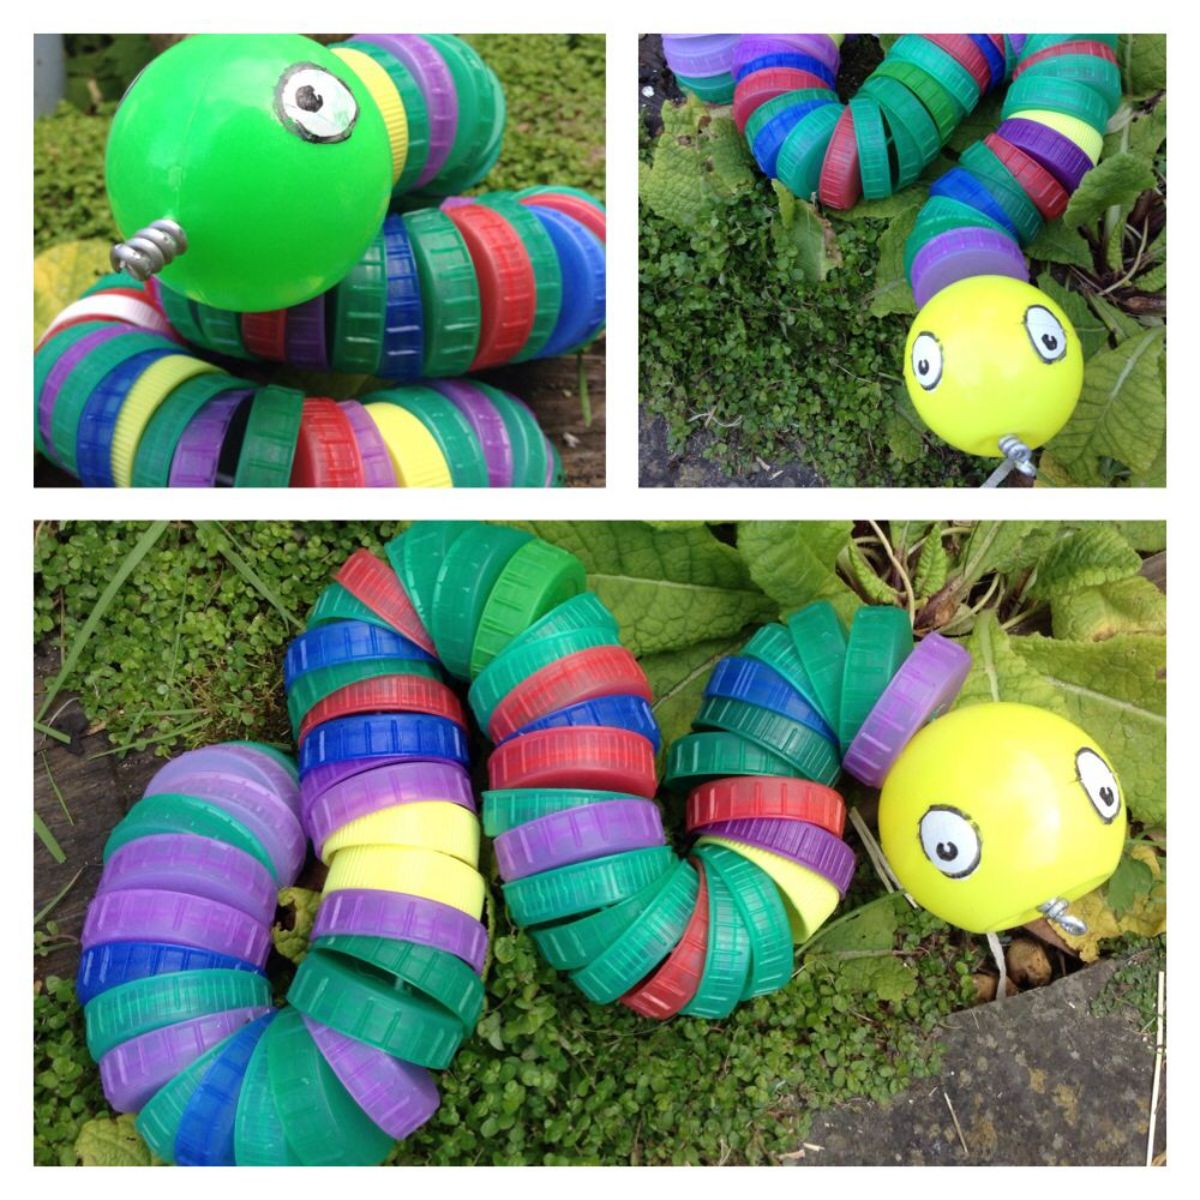 3 photos of a snake made of colored bottle tops strung together with a ping pong ball in the front